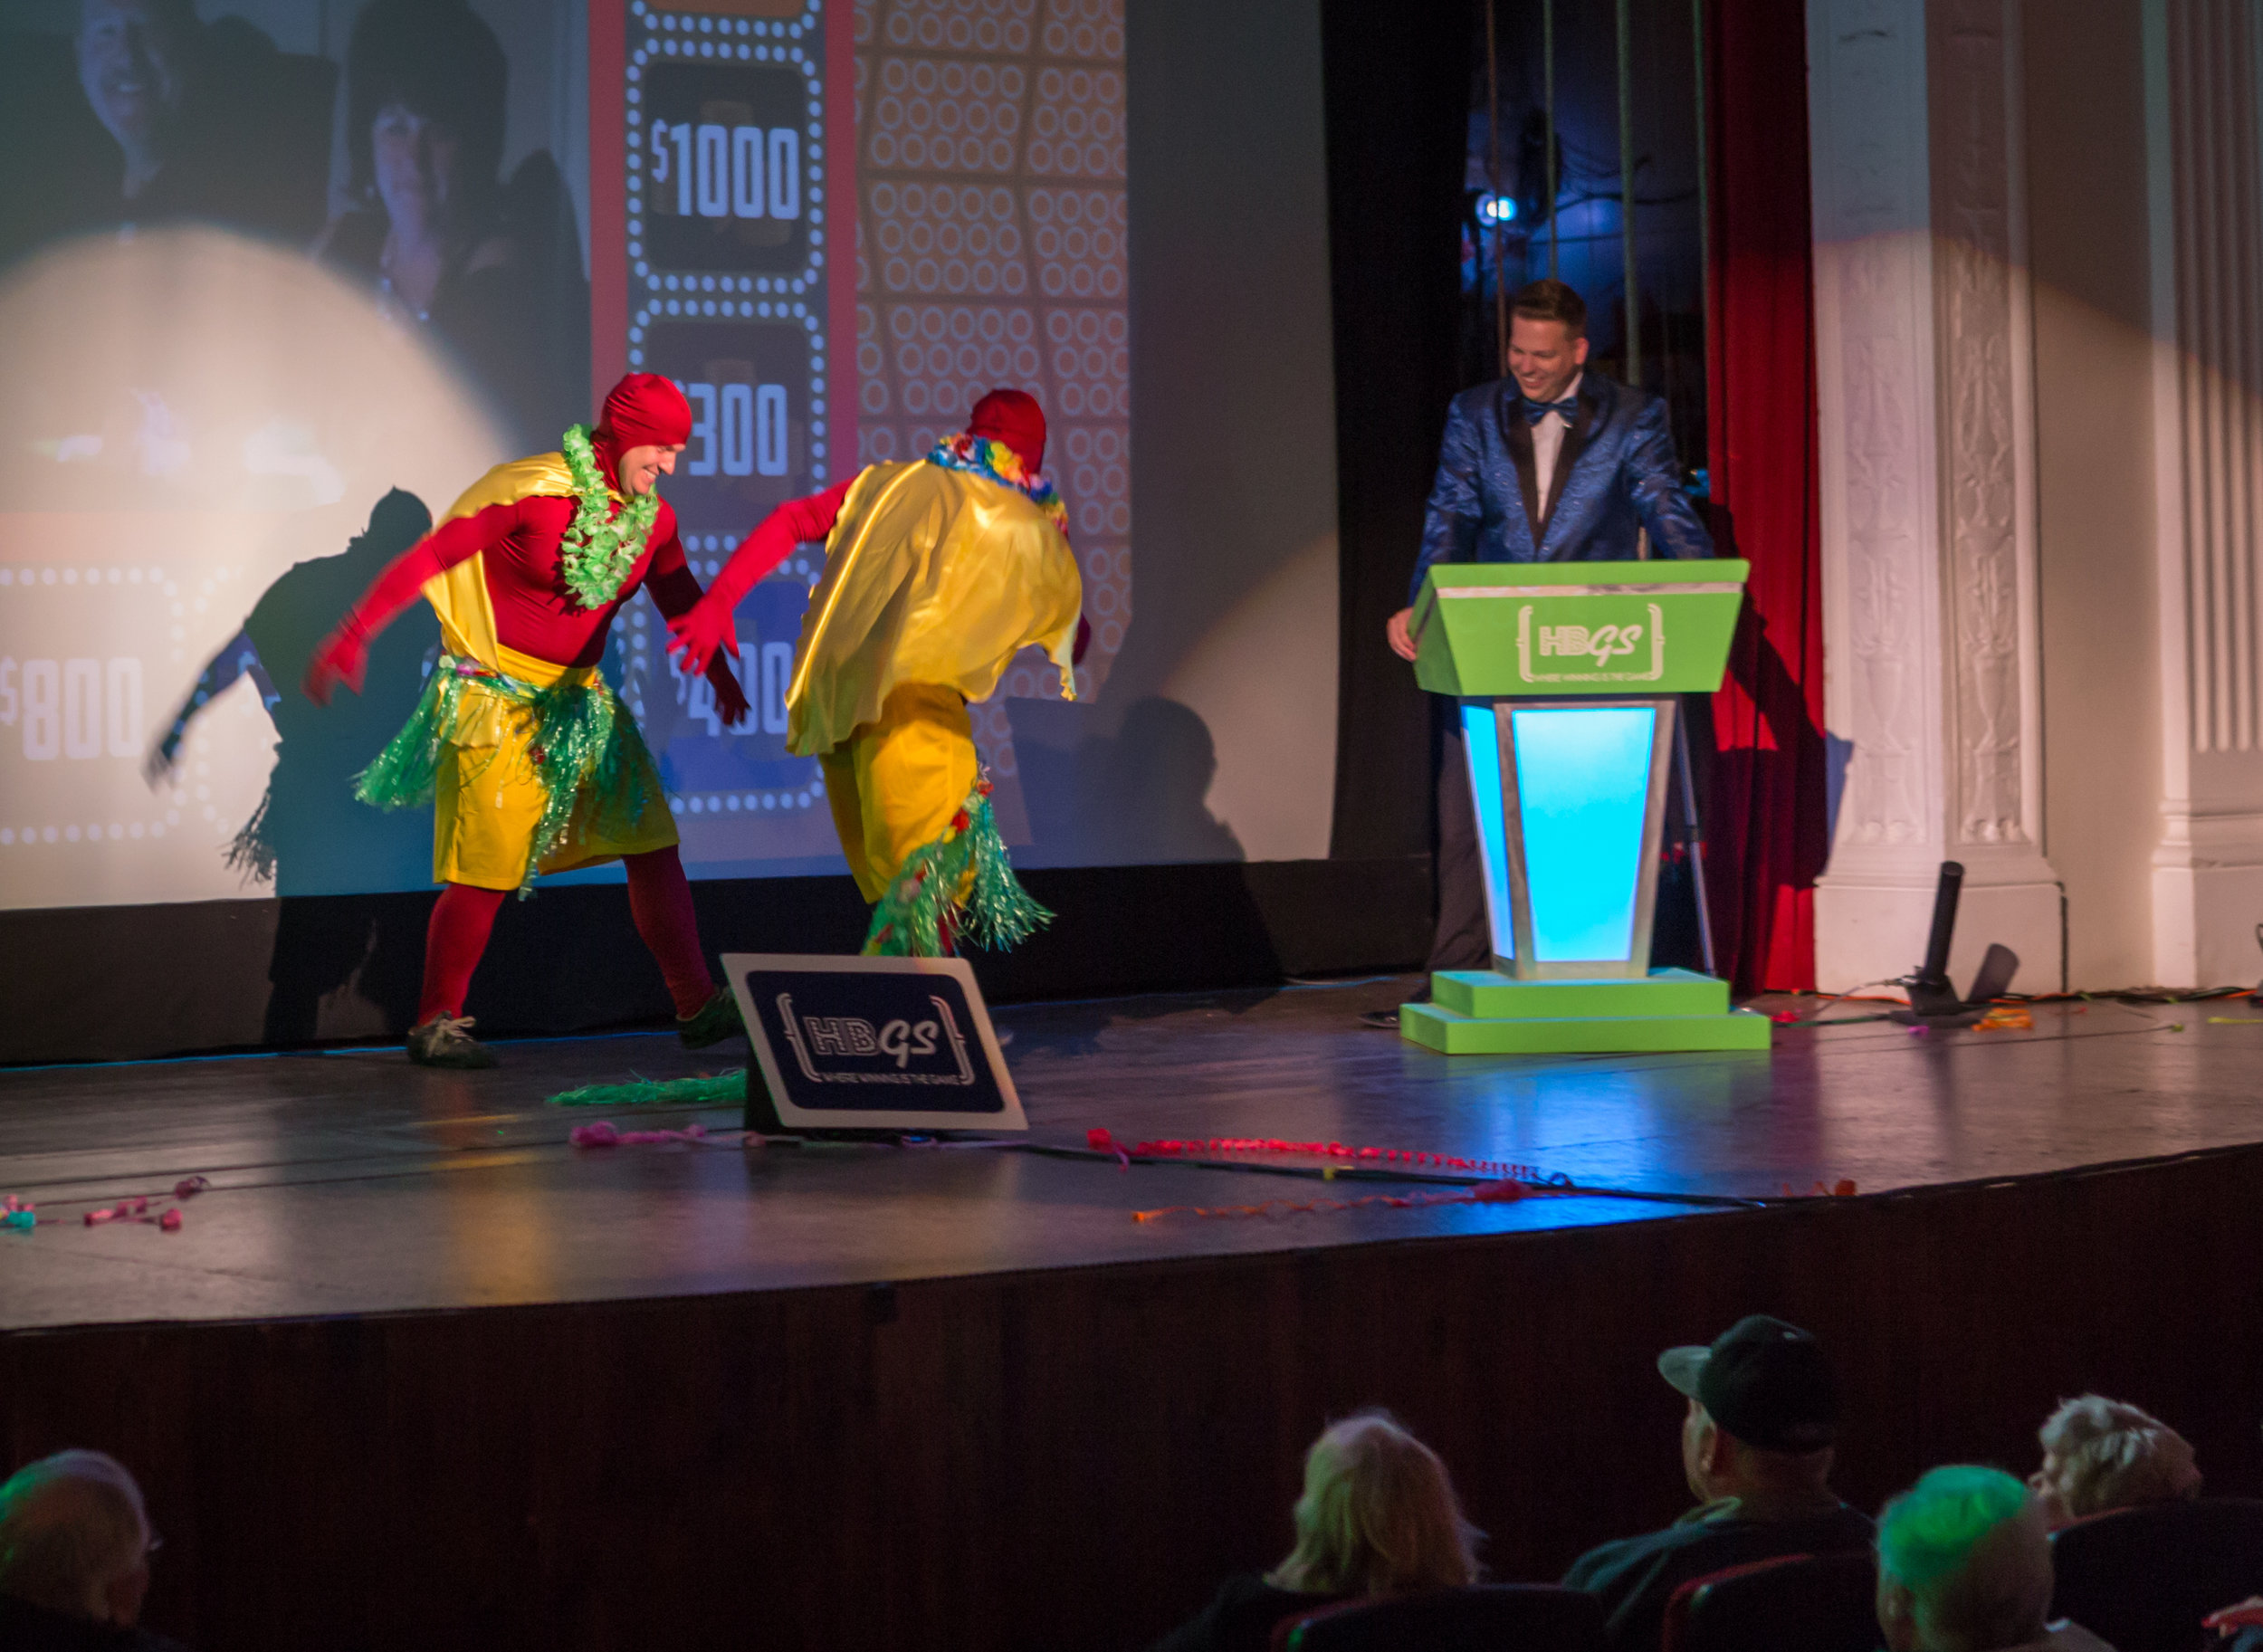 No one quite knows what is going to happen next with the Whammys; not even the show's executive producer and host!